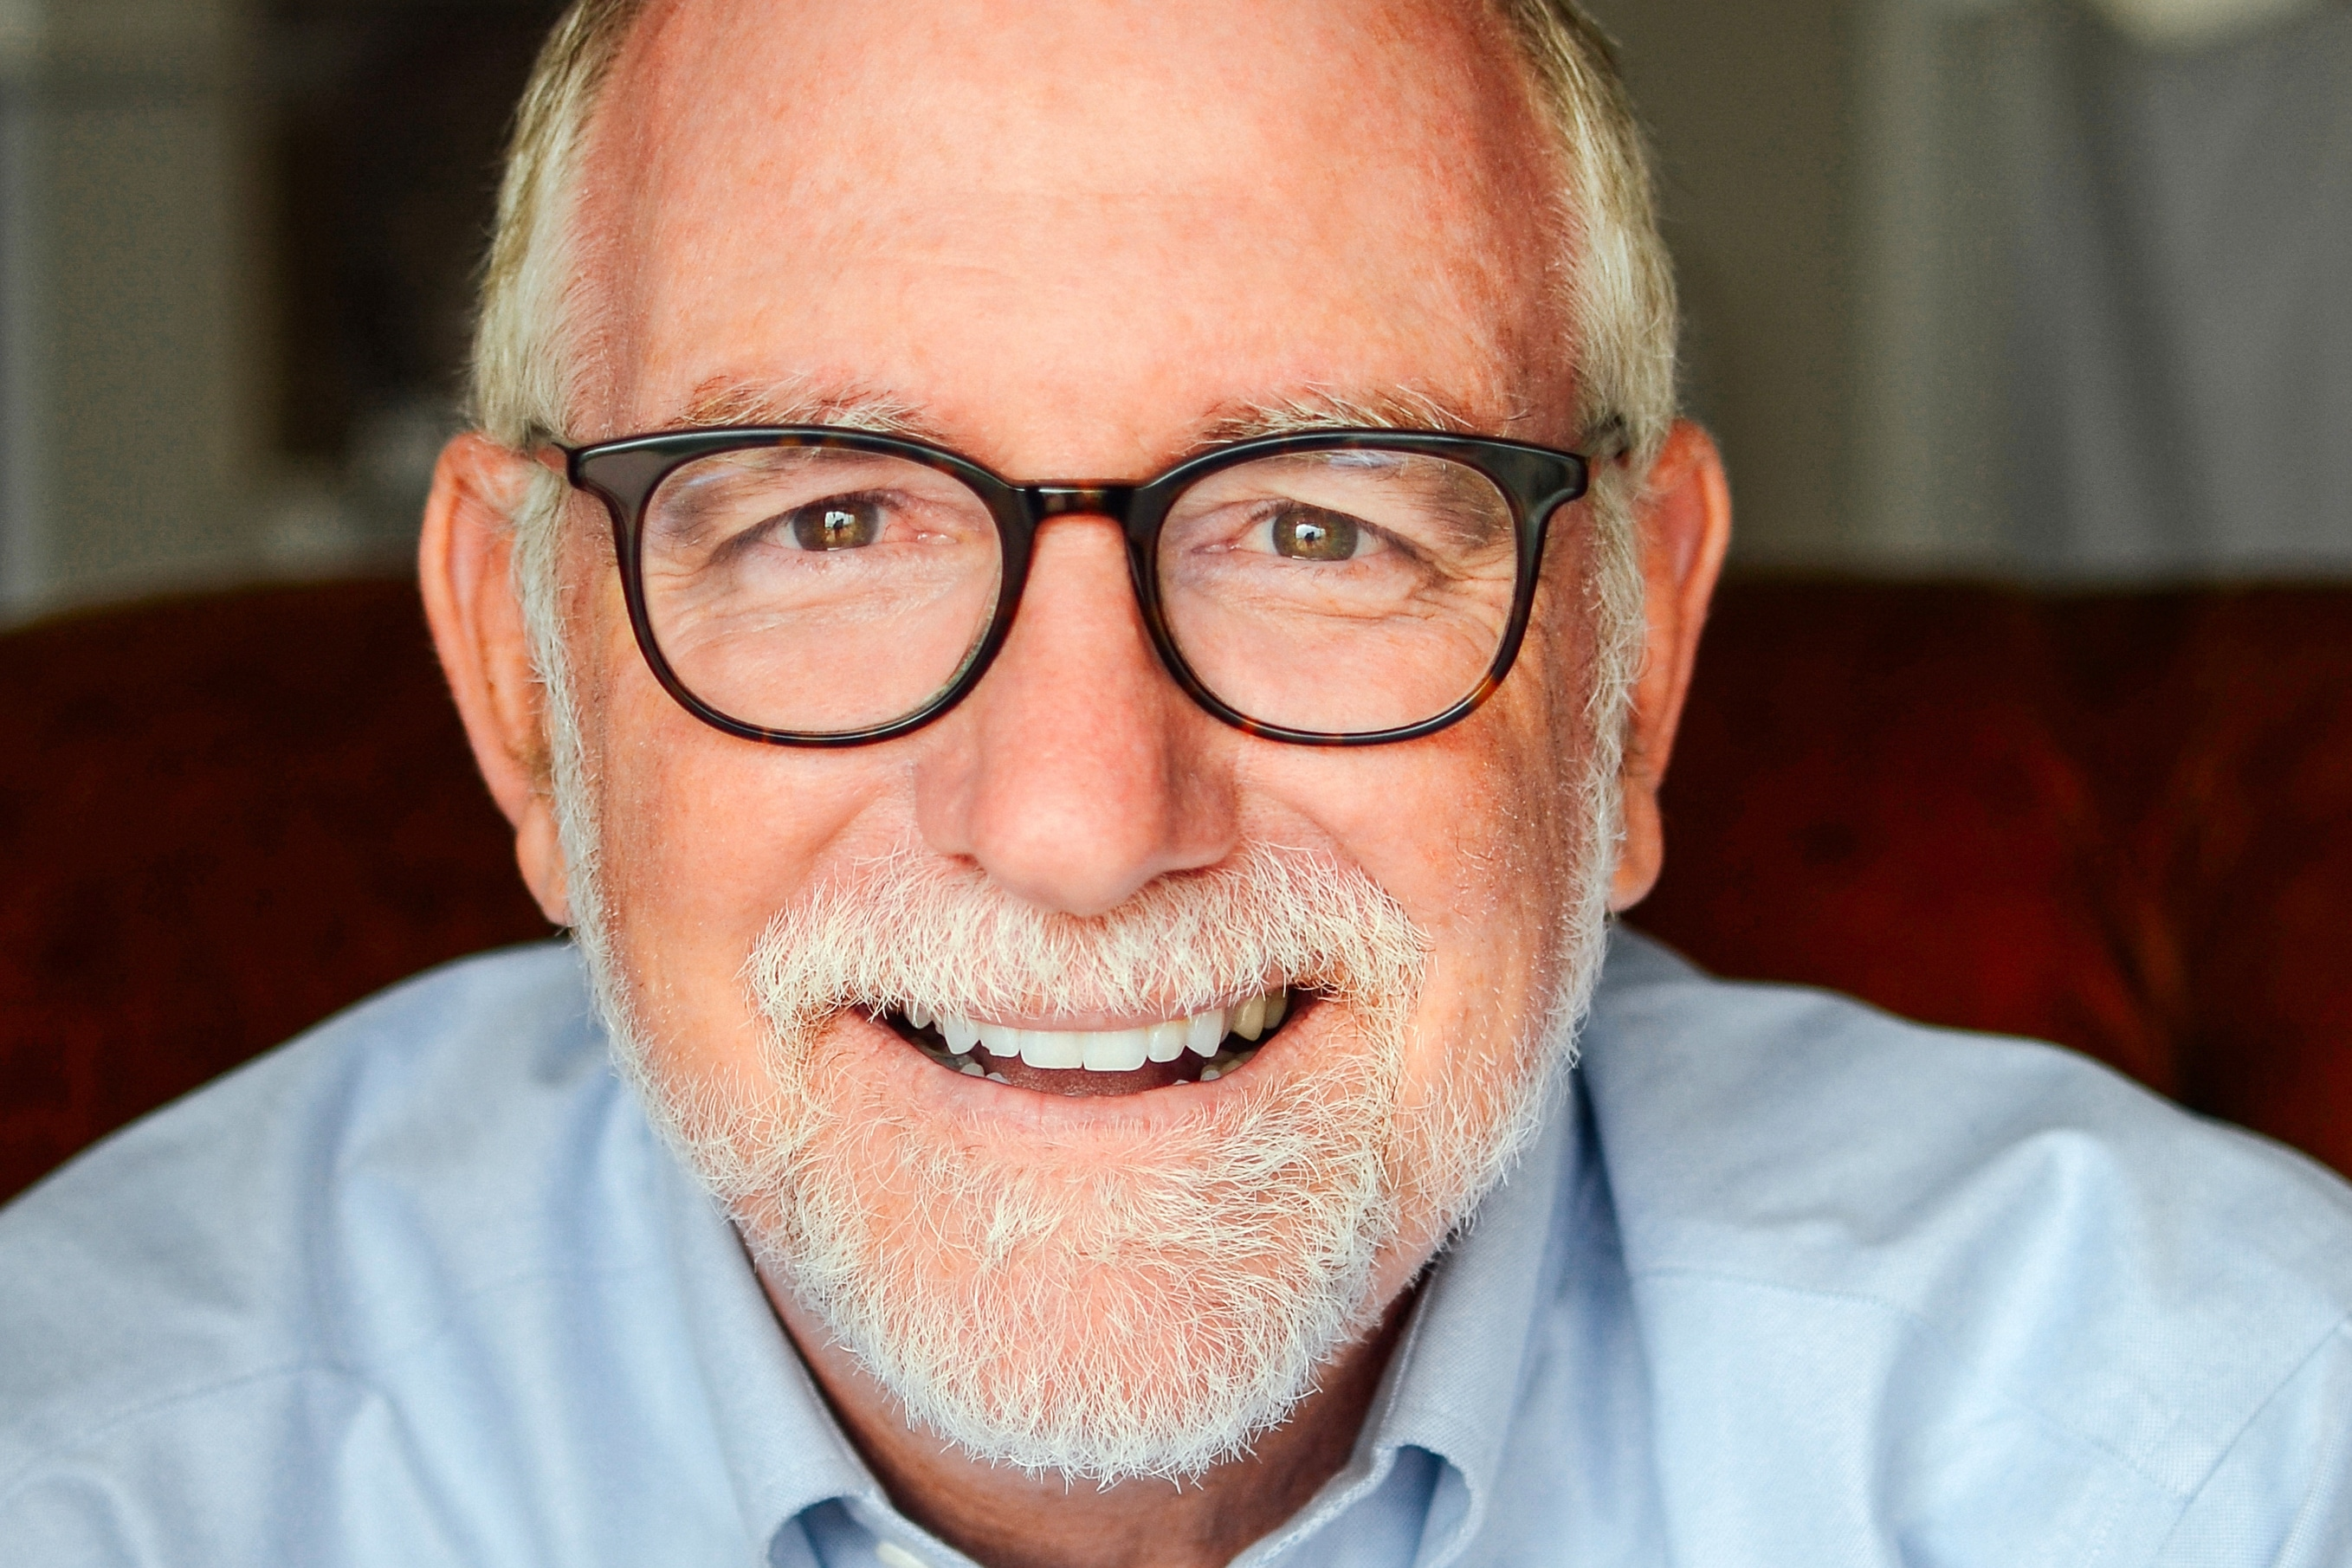 CNLP 349: Bob Goff on Breaking Out of Safe, Dreaming Bigger Than You Think You Can and How to Make a Difference Across the Street